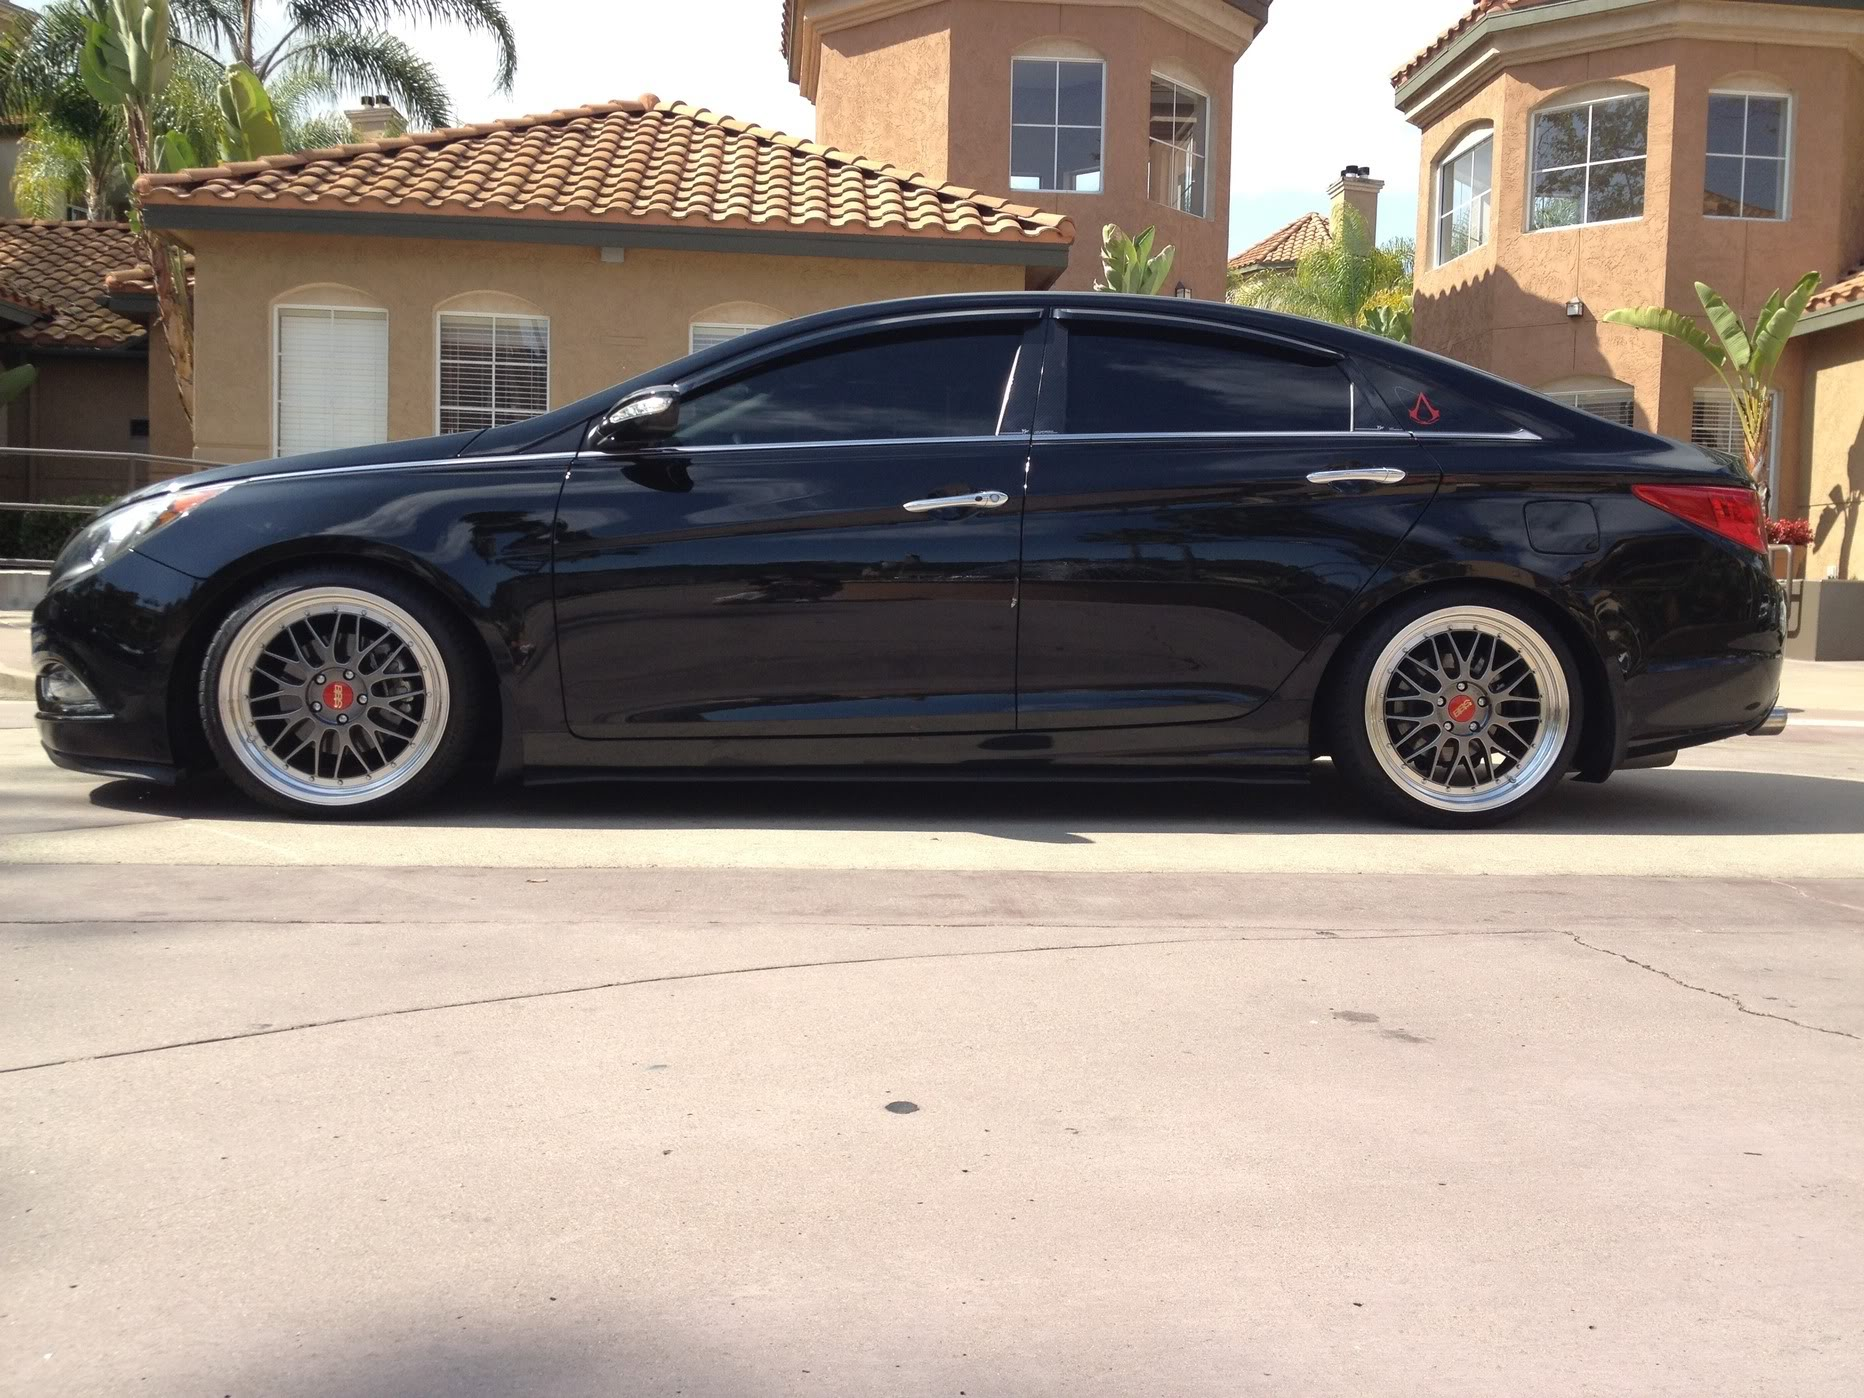 Hyundai Sonata Custom Wheels Bbs Lm 19x8 5 Et 35 Tire